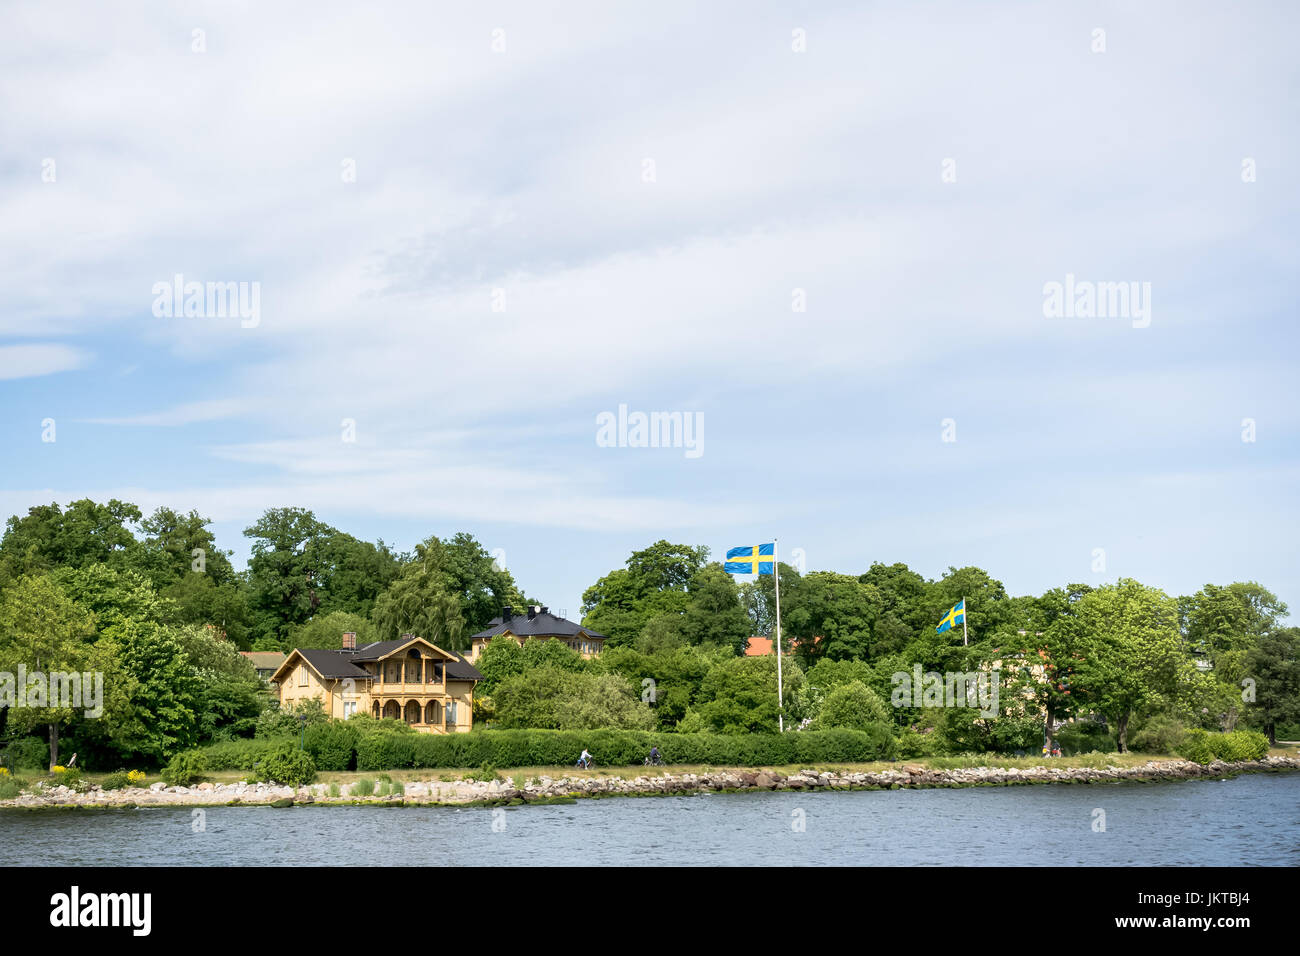 STOCKHOLM, SWEDEN - JUNE 6, 2016: Coastal houses with Swedish flags and cycling people, on an island of Stockholm - Stock Image